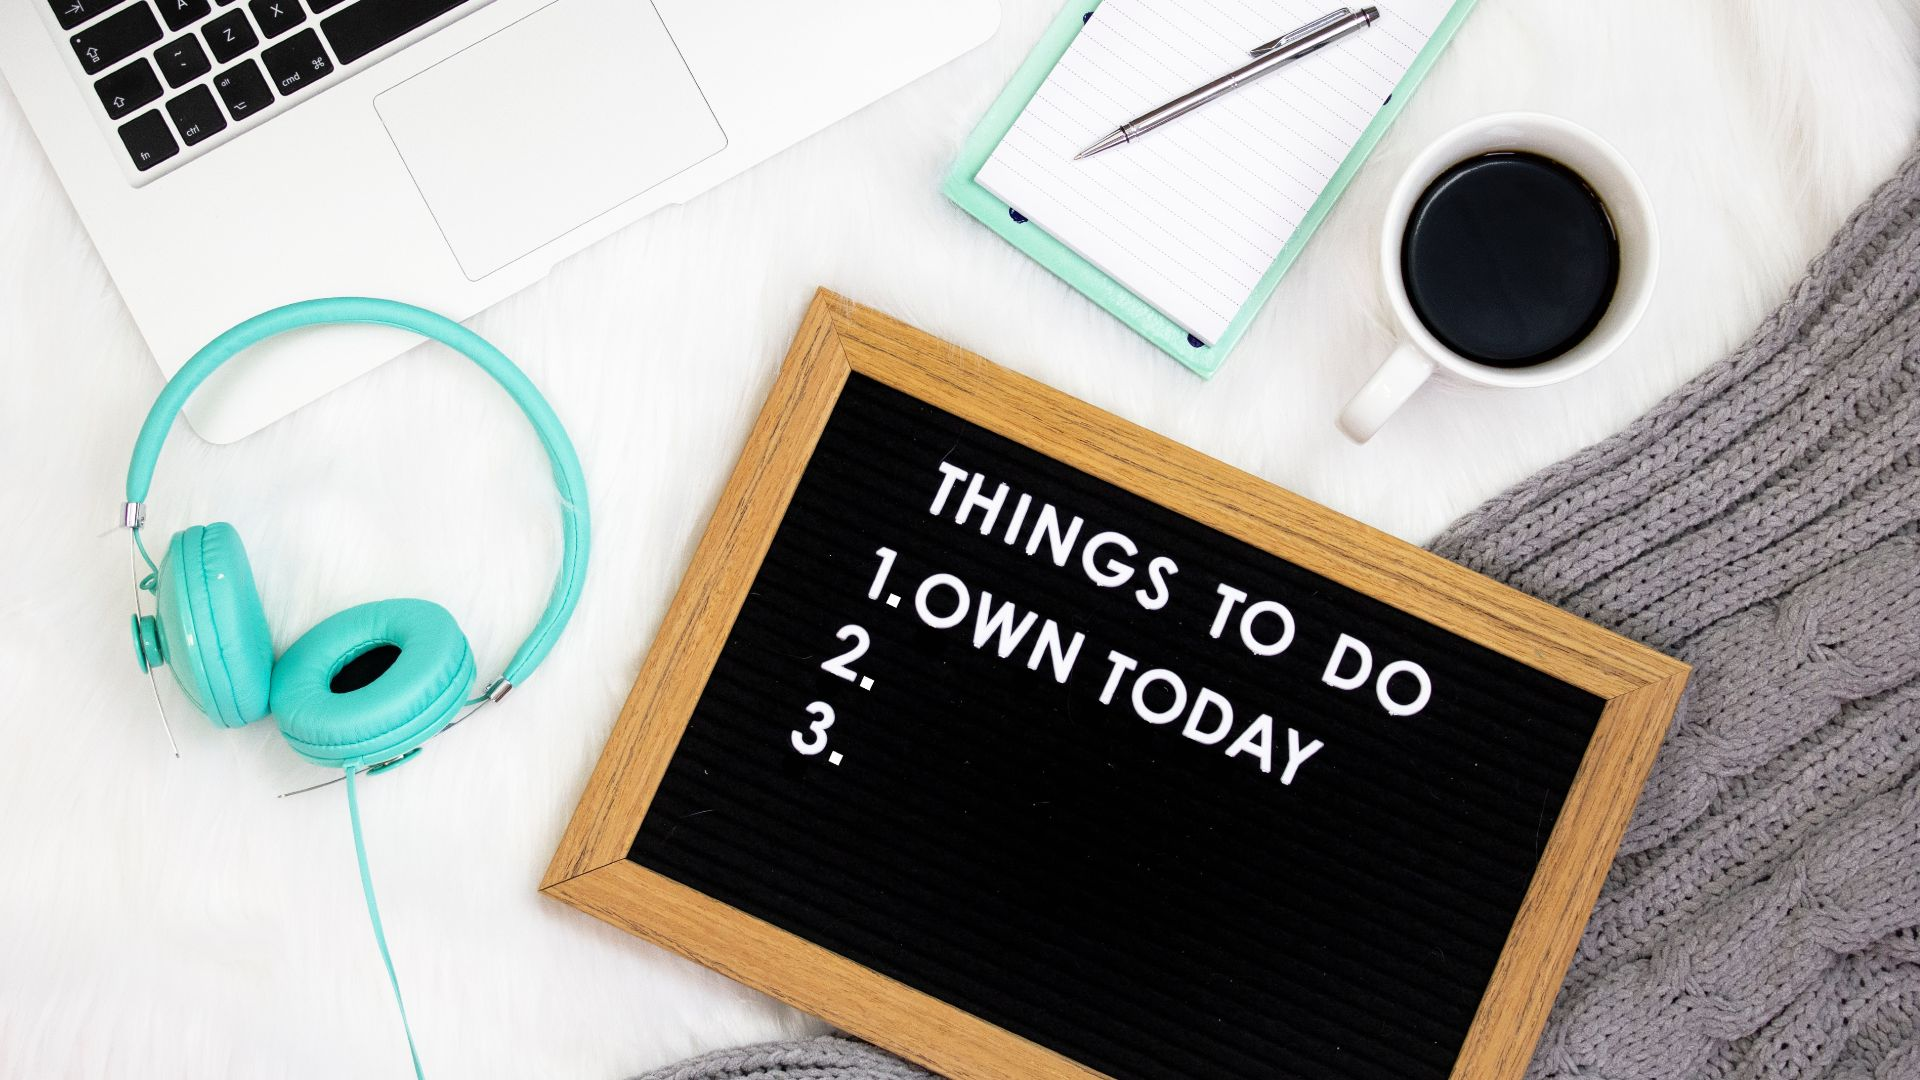 5 Ways To Make The Most Of Phase 2 While Still WFH